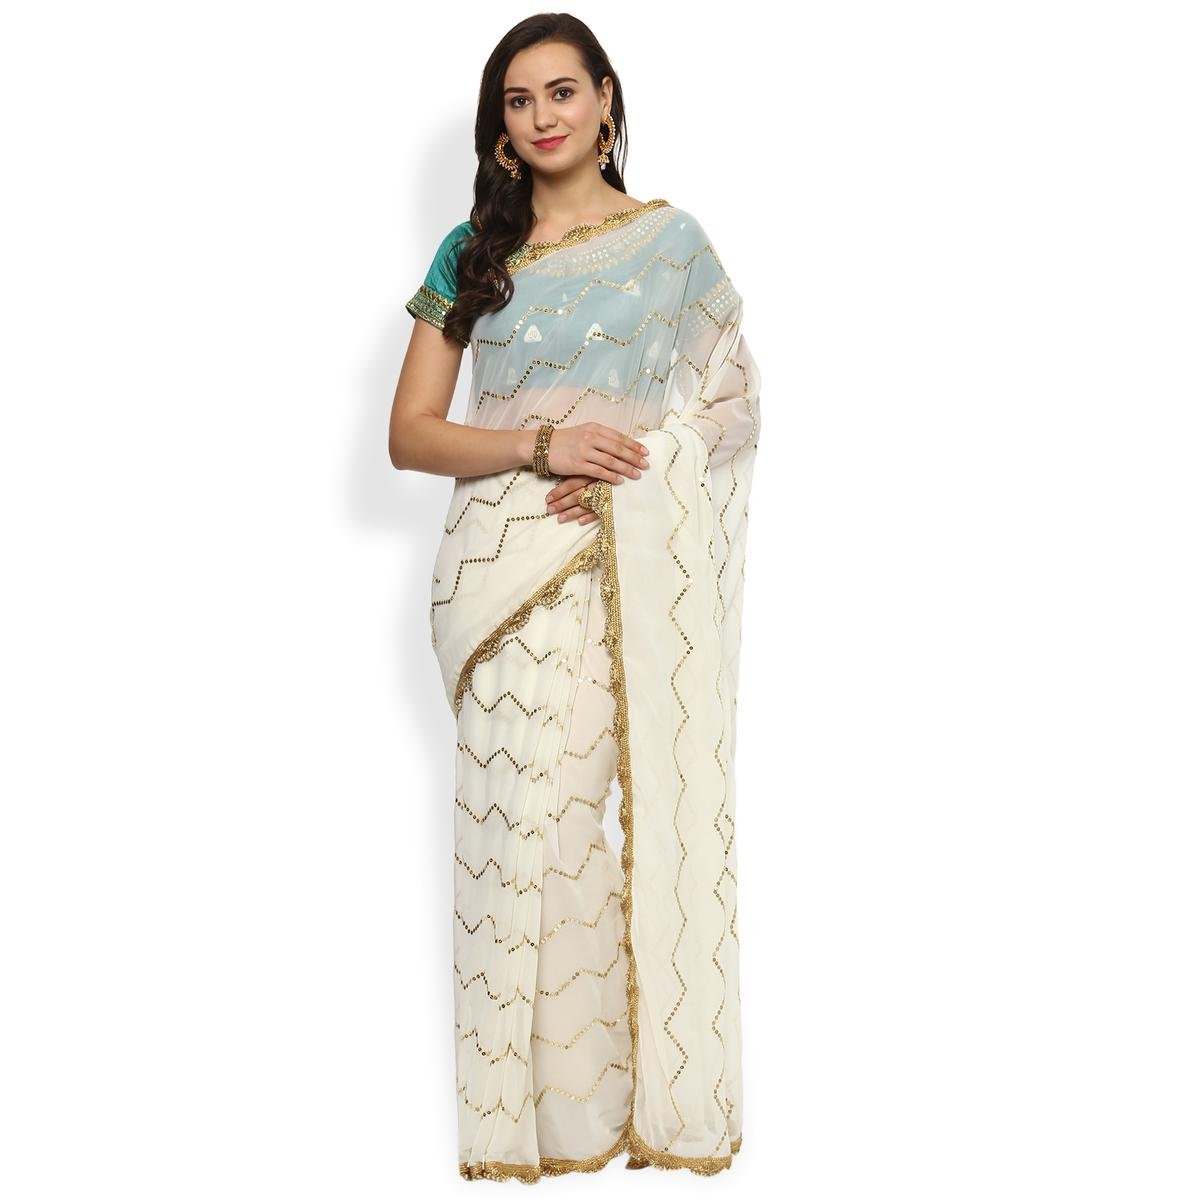 Wedding White Sarees Online: Buy Alluring White Designer Embroidered Georgette Saree